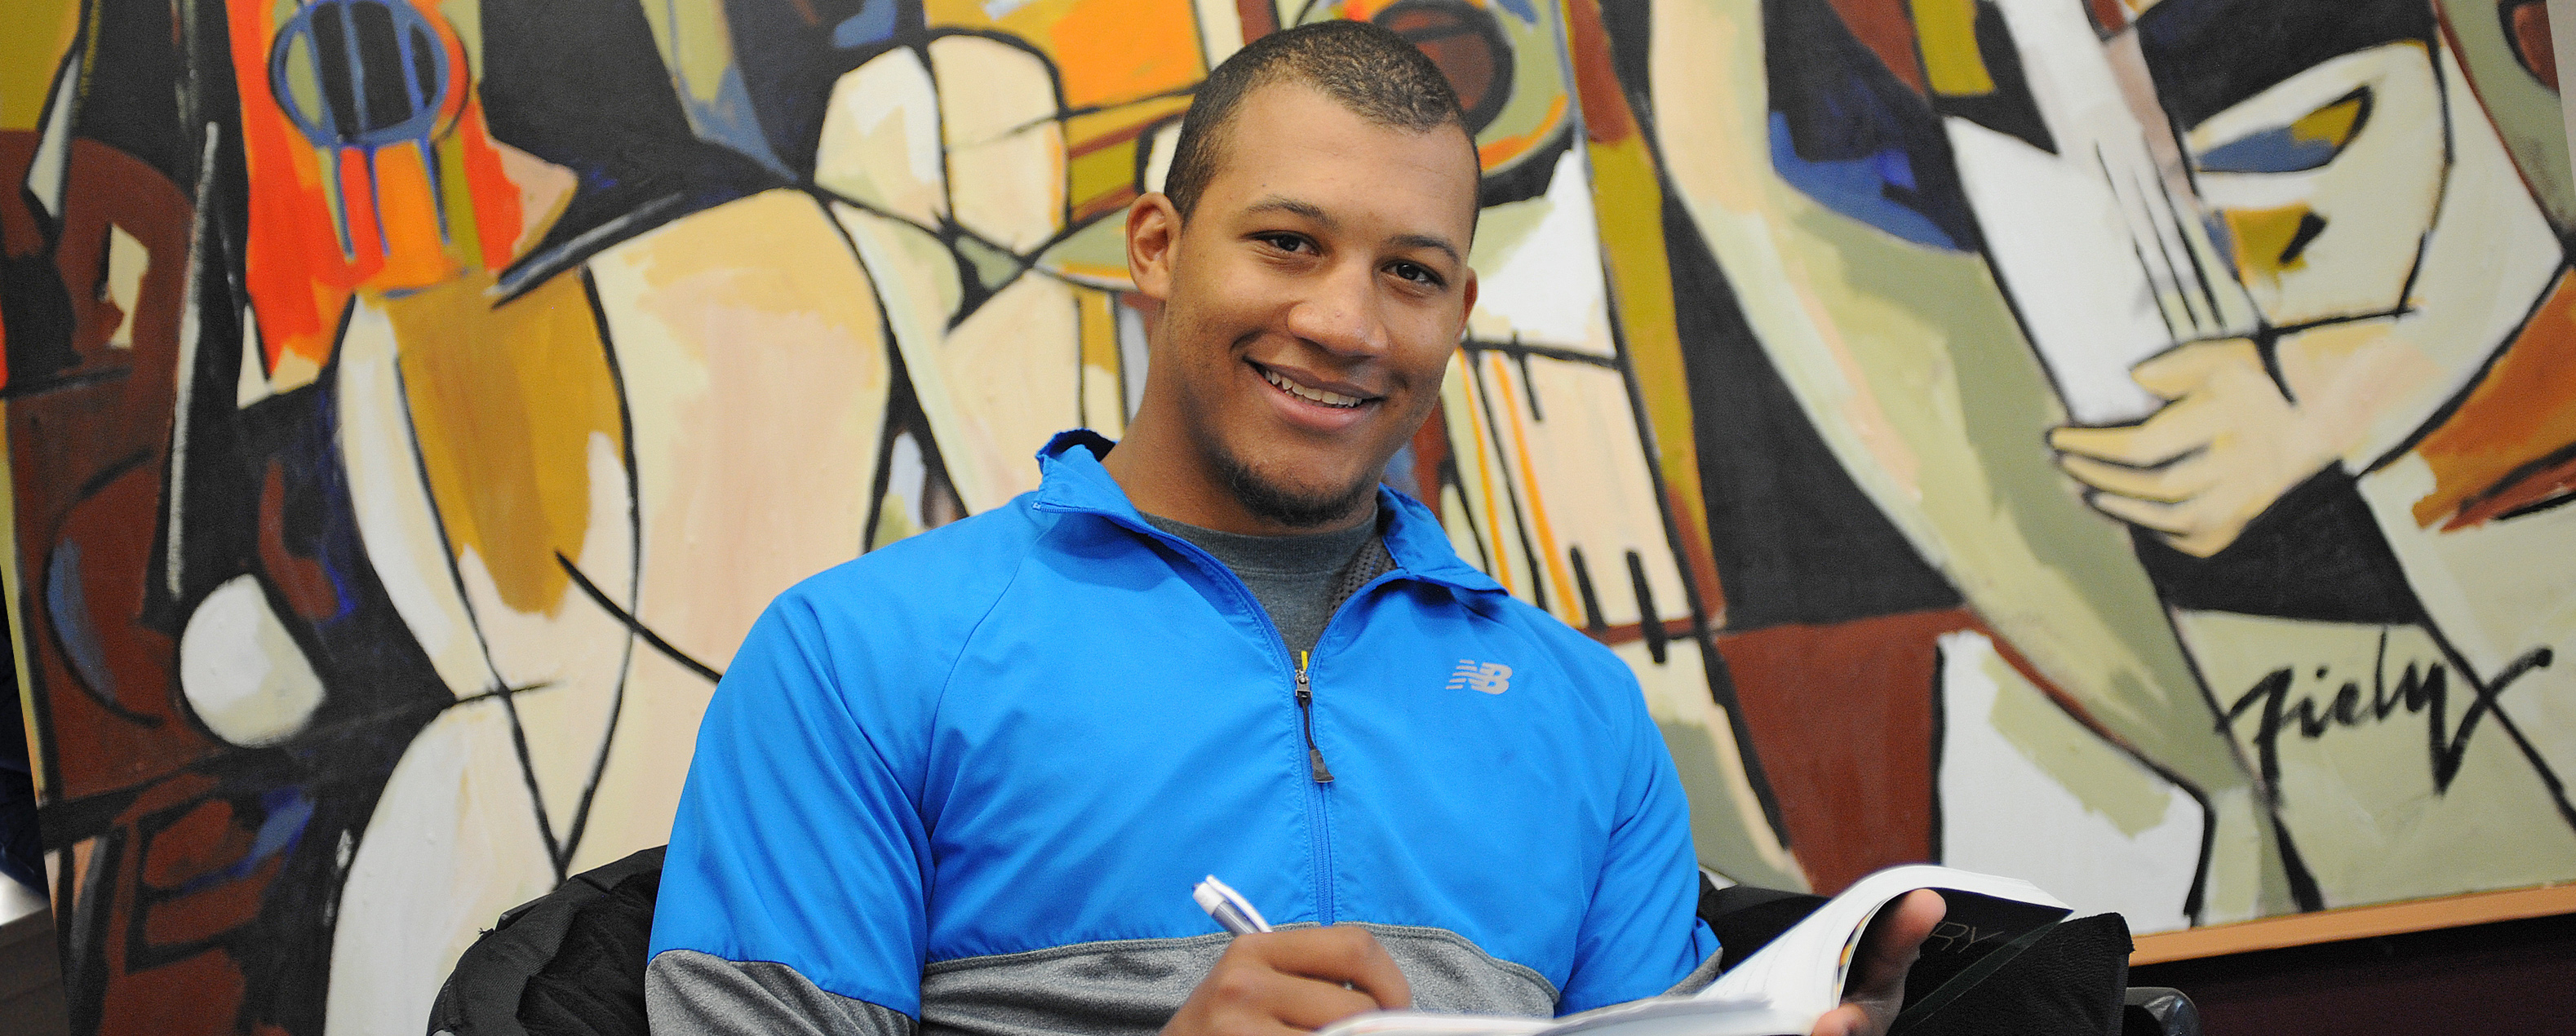 Student sitting in front of a large painting and writing in a book. He smiles at the camera.